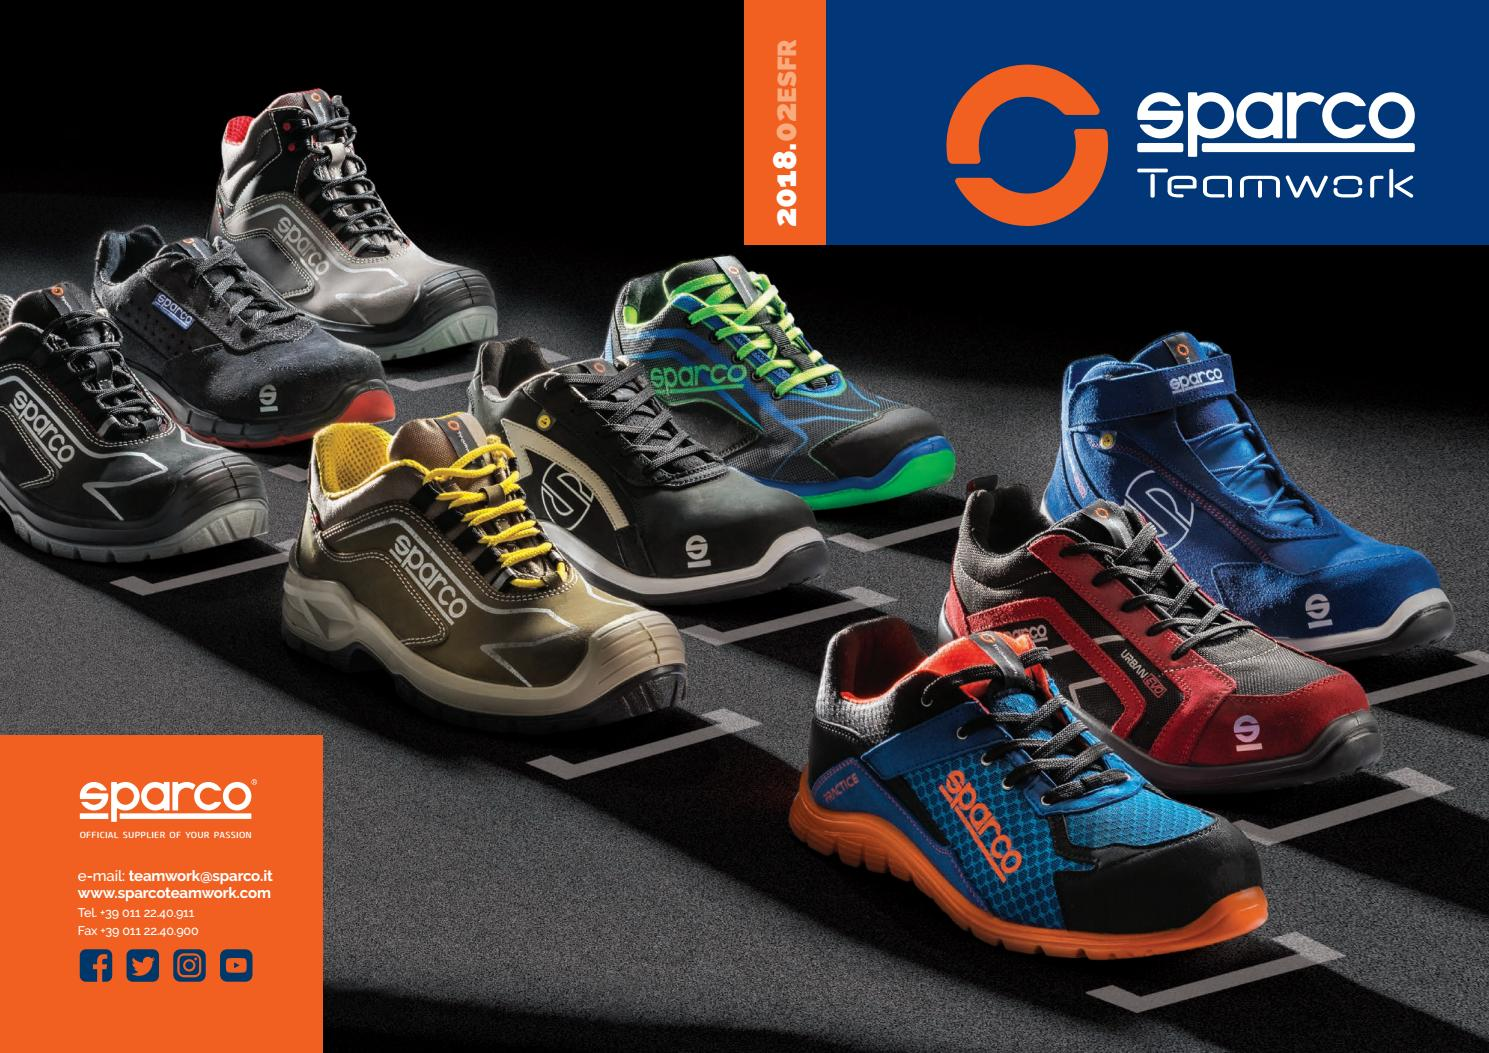 2730b8e5669 Sparco teamwork by Speedwear Eyckmans - issuu